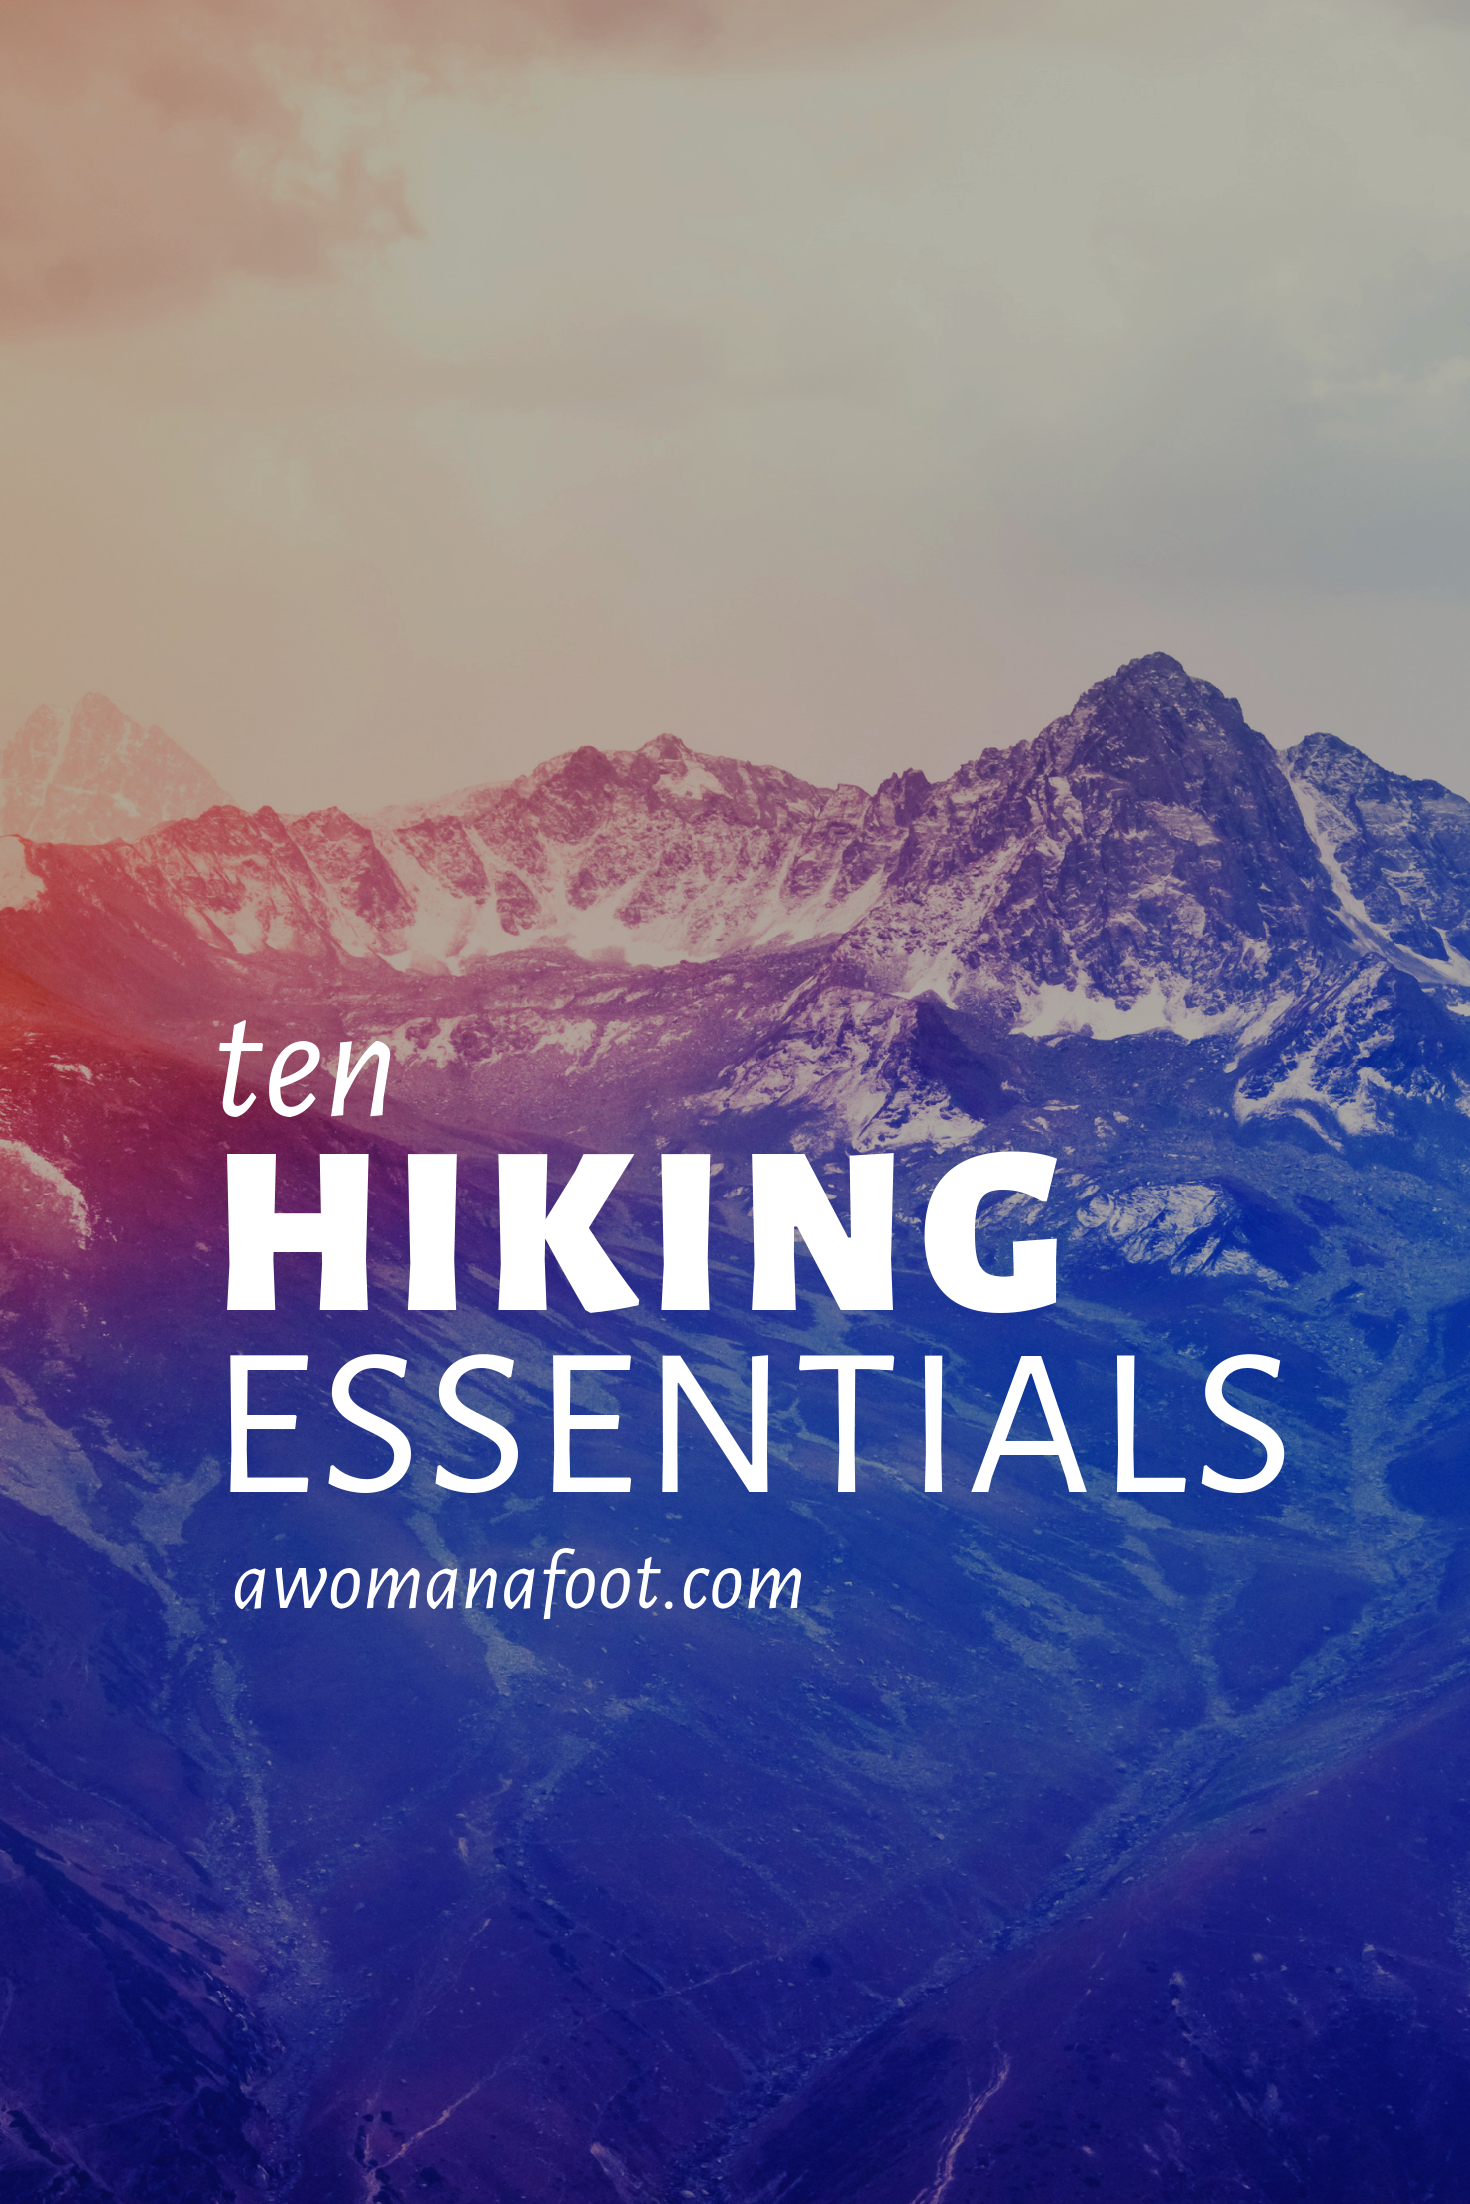 10 Day Hiking Essentials: What You Need to Pack & Wear for a Safe and Pleasant Day-Long Hiking Adventure! Make sure you are prepared for hitting the trail with the right hiking gear and attire - learn more at AWOMANAFOOT.COM | #hike | #backpacking | #Outdoors | #hikingGear | #hikingClothes | What should I wear hiking? | What do I need to take for a day-hike? | Hiking 101 | Hiking for Beginners |